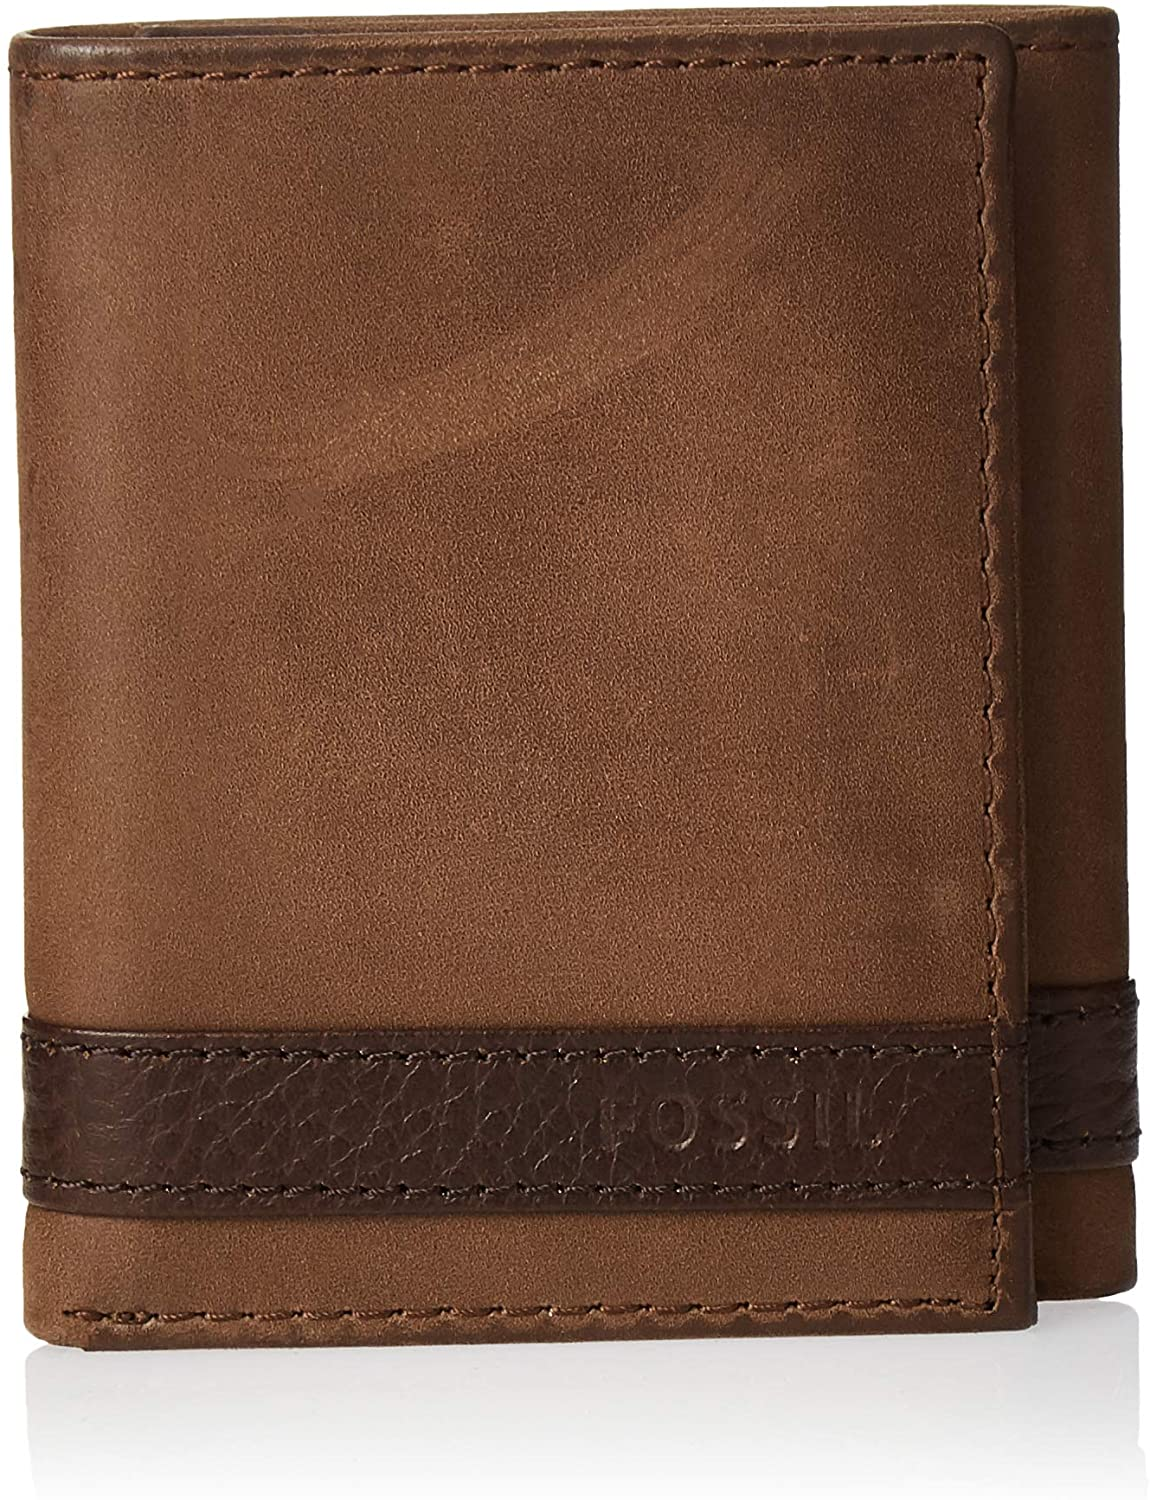 Fossil Original ML3645200 Brown Quinn Trifold Leather Men/'s Wallet